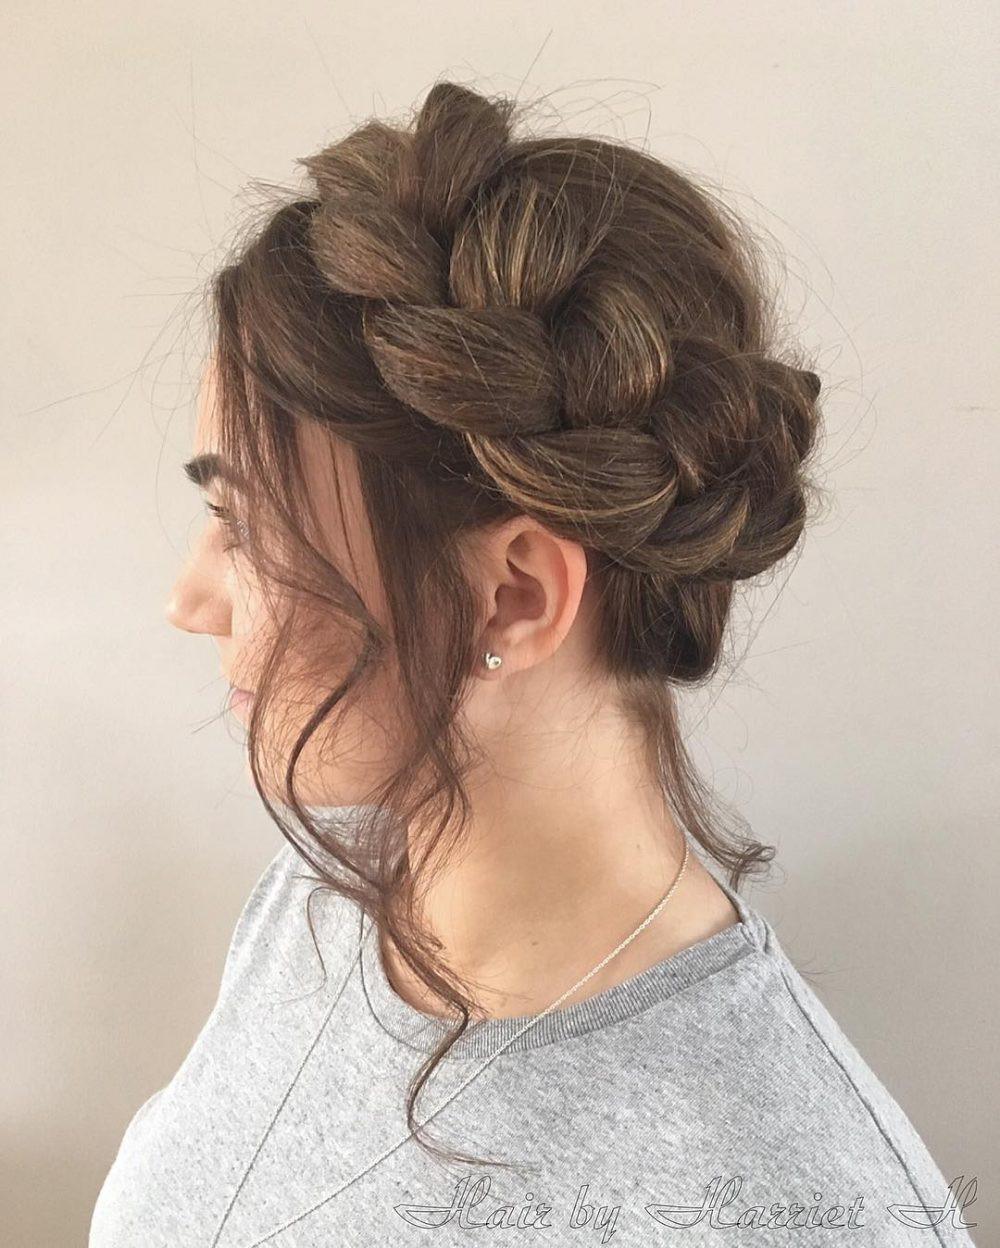 Updo Braid Hairstyles  26 Gorgeous Braided Updos You Must Try